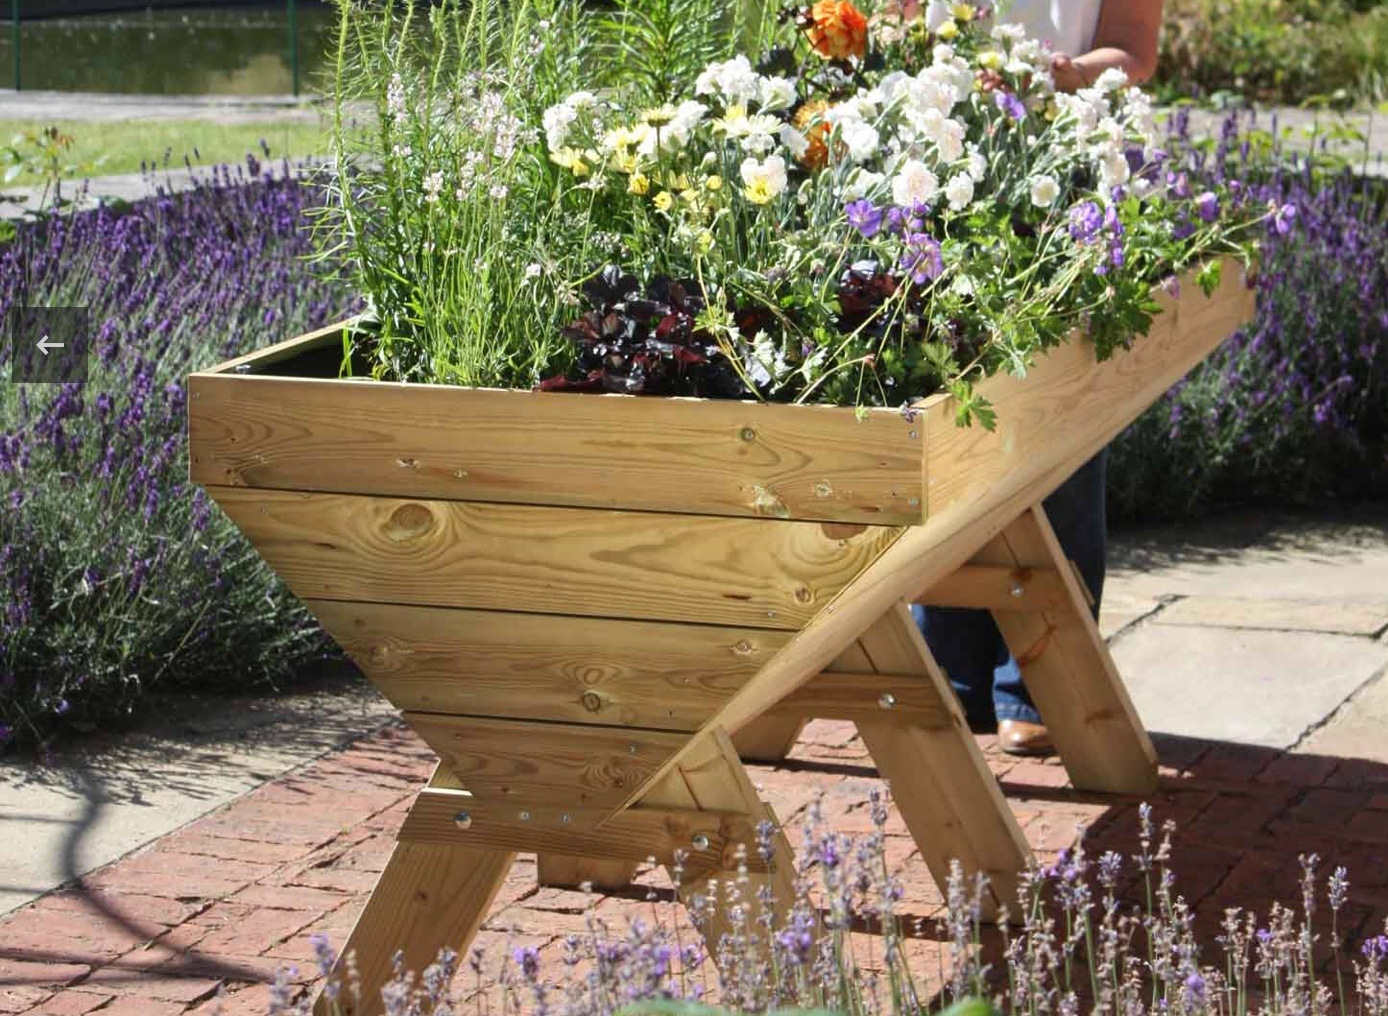 Wooden manger raised planter